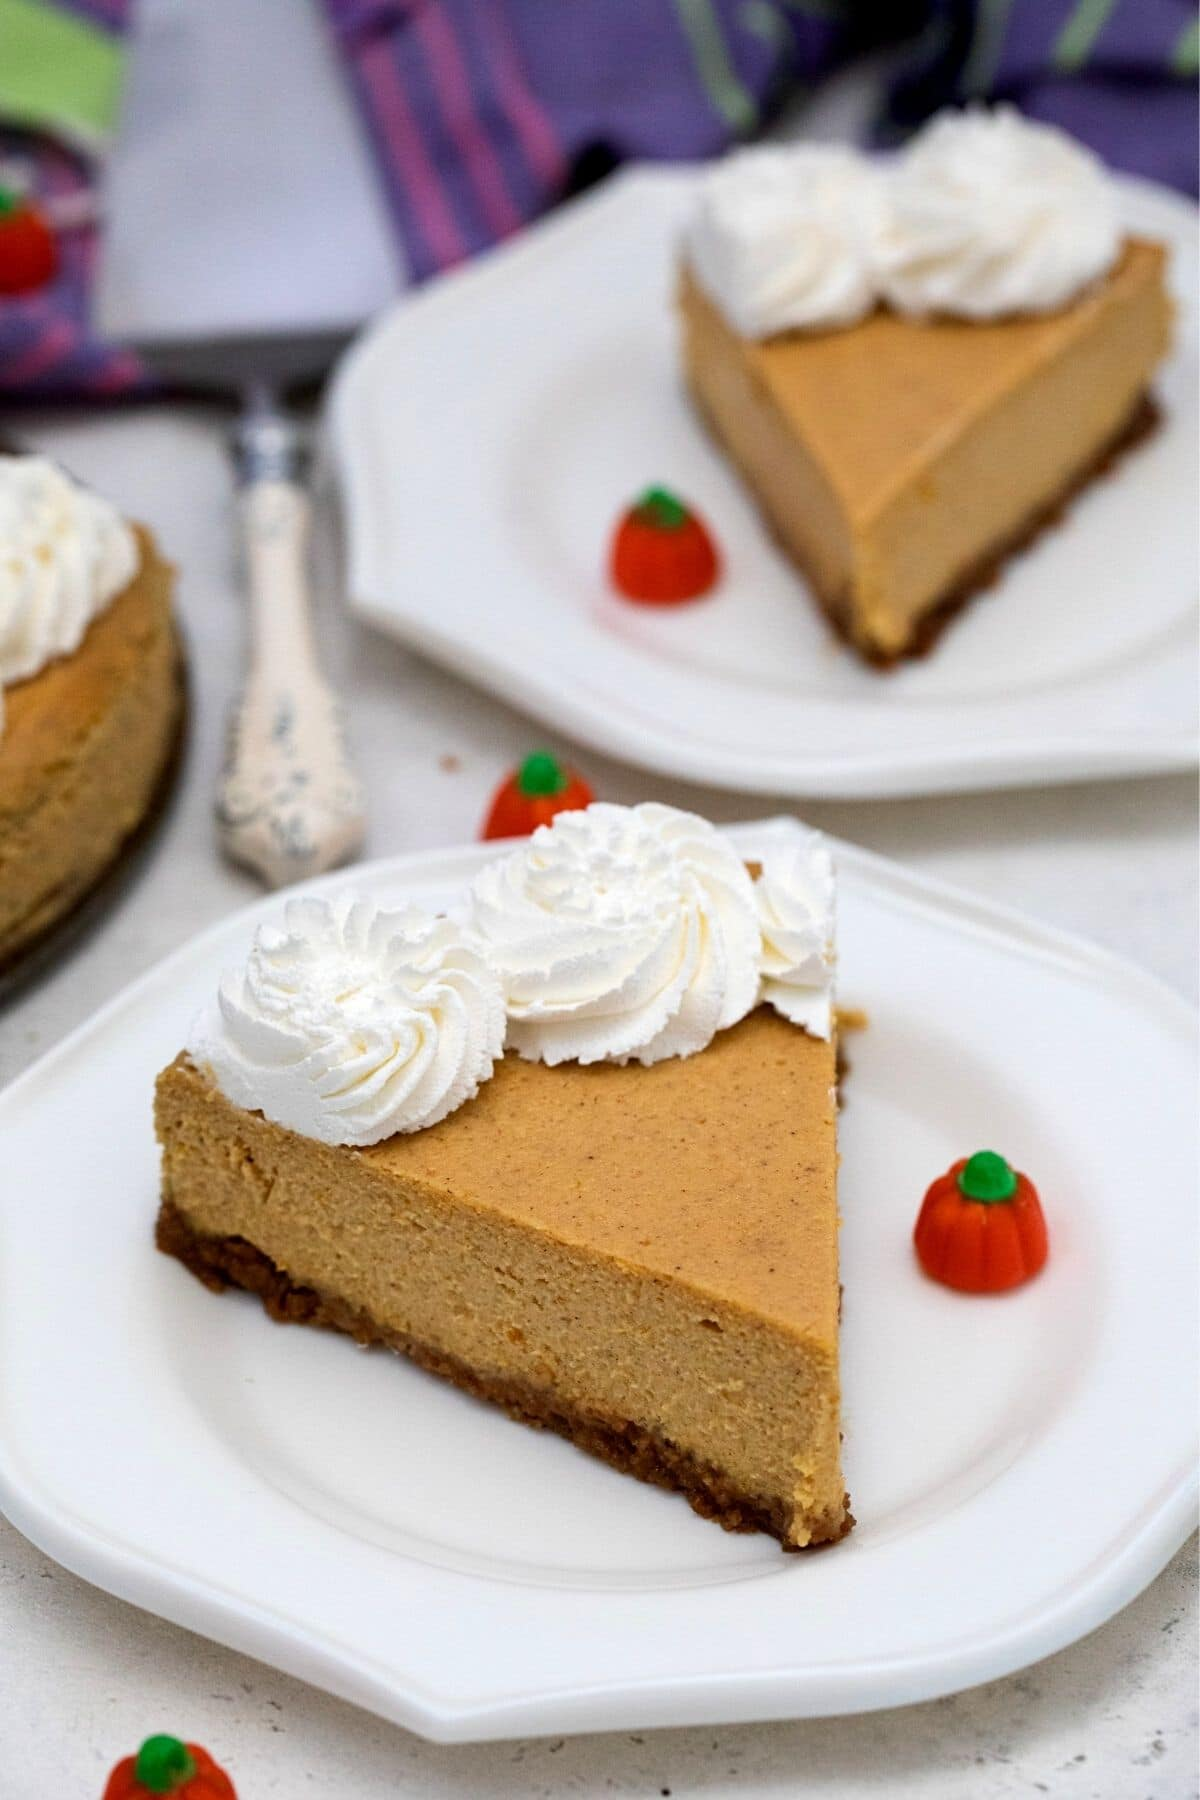 Slices of cheesecake with whipped topping on white saucers